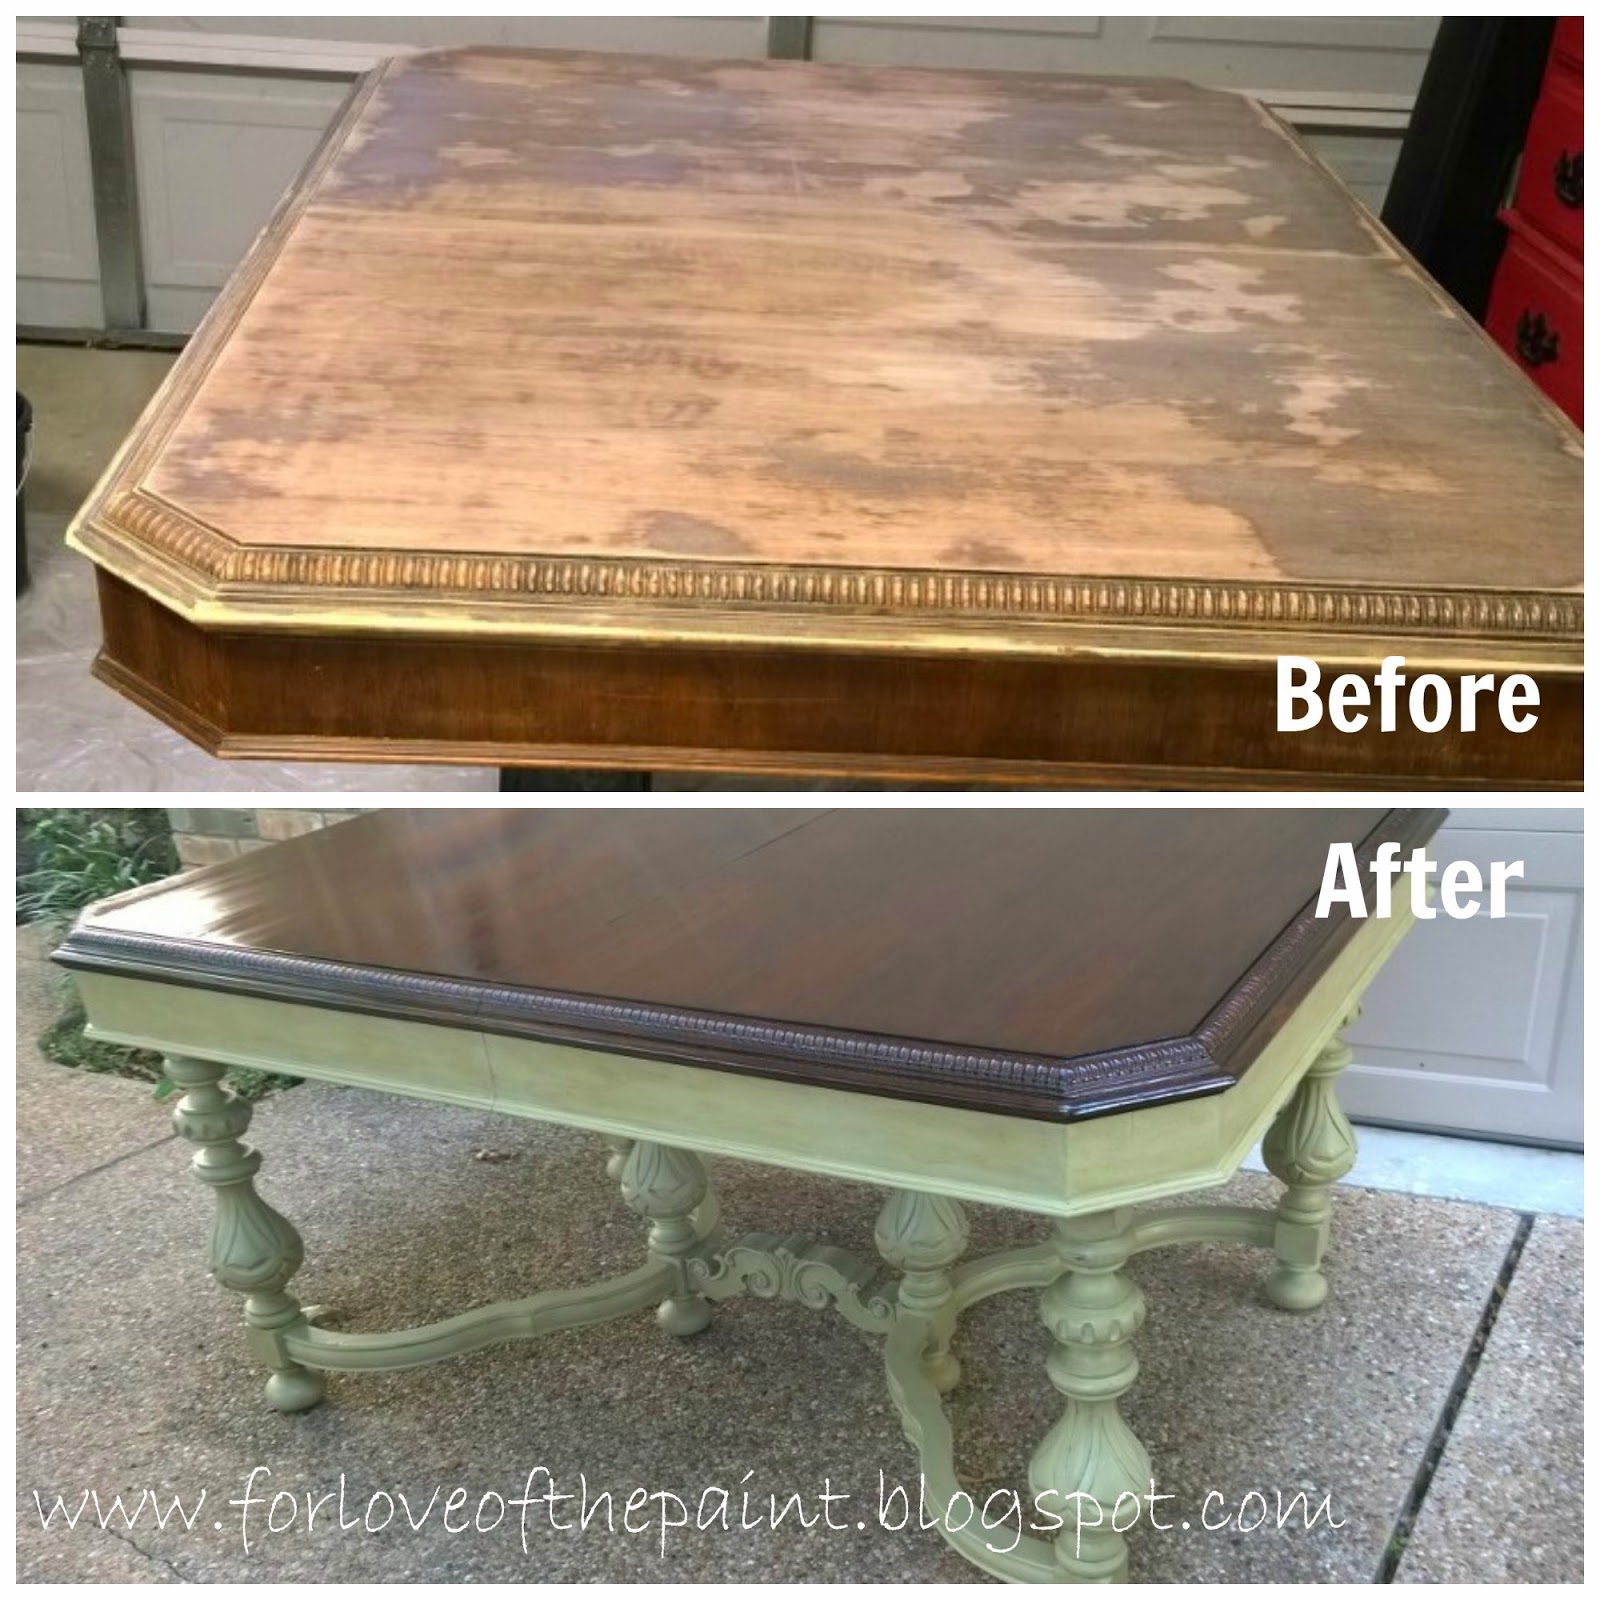 With A Little Luck And A Lot Of Elbow Grease (plus A Little Dark Wax), I  Restained The Top And Painted The Body In Annie Sloan Versailles, Then  Antiqued ...